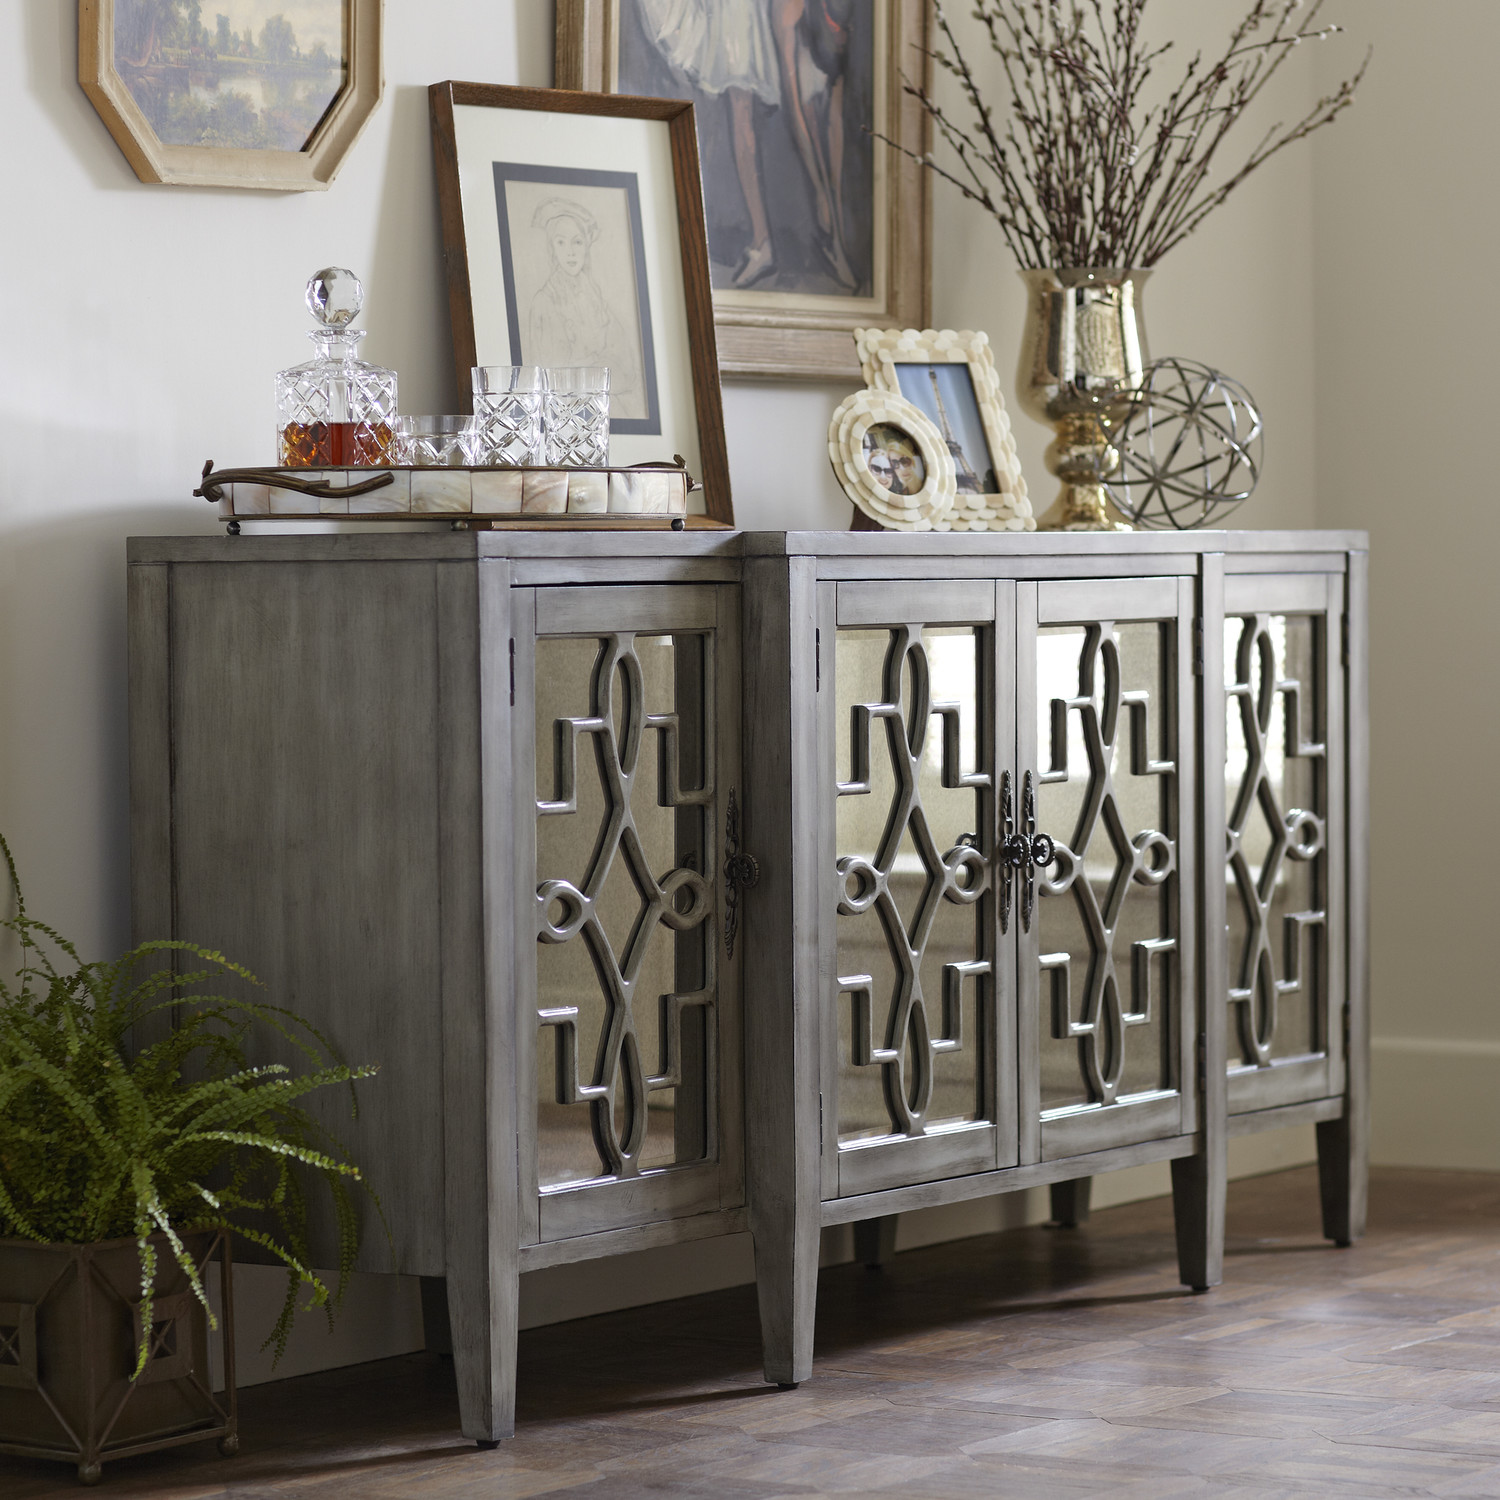 Kitchen Hutch Cabinets | Buffets and Sideboards | Corner Dining Room Hutch - Furniture: Narrow Sideboard Mirrored Buffet Cabinet Buffets